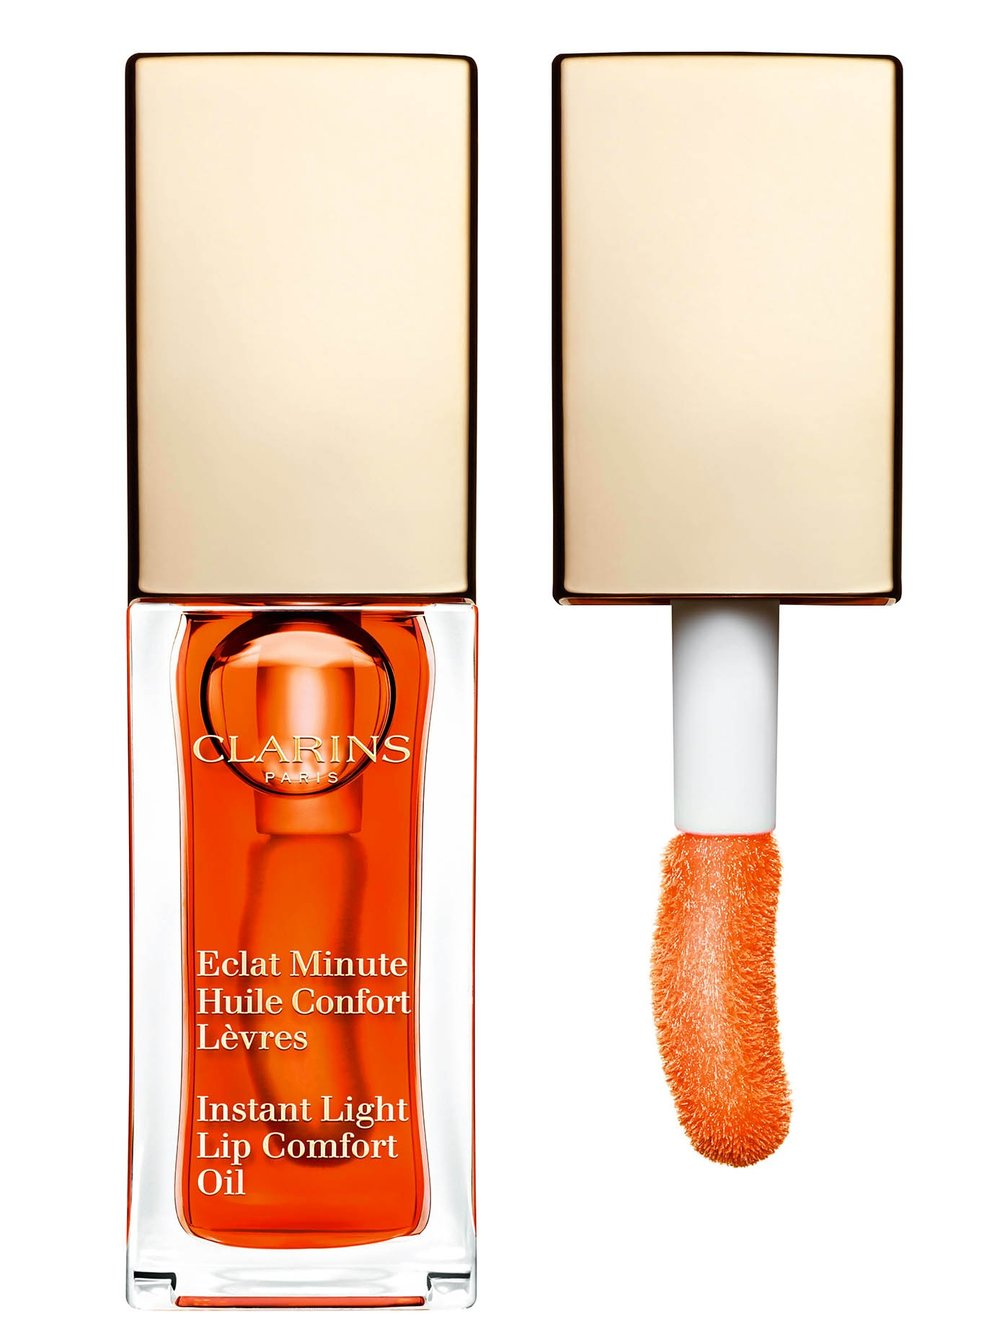 Instant Light Lip Comfort Oil by Clarins